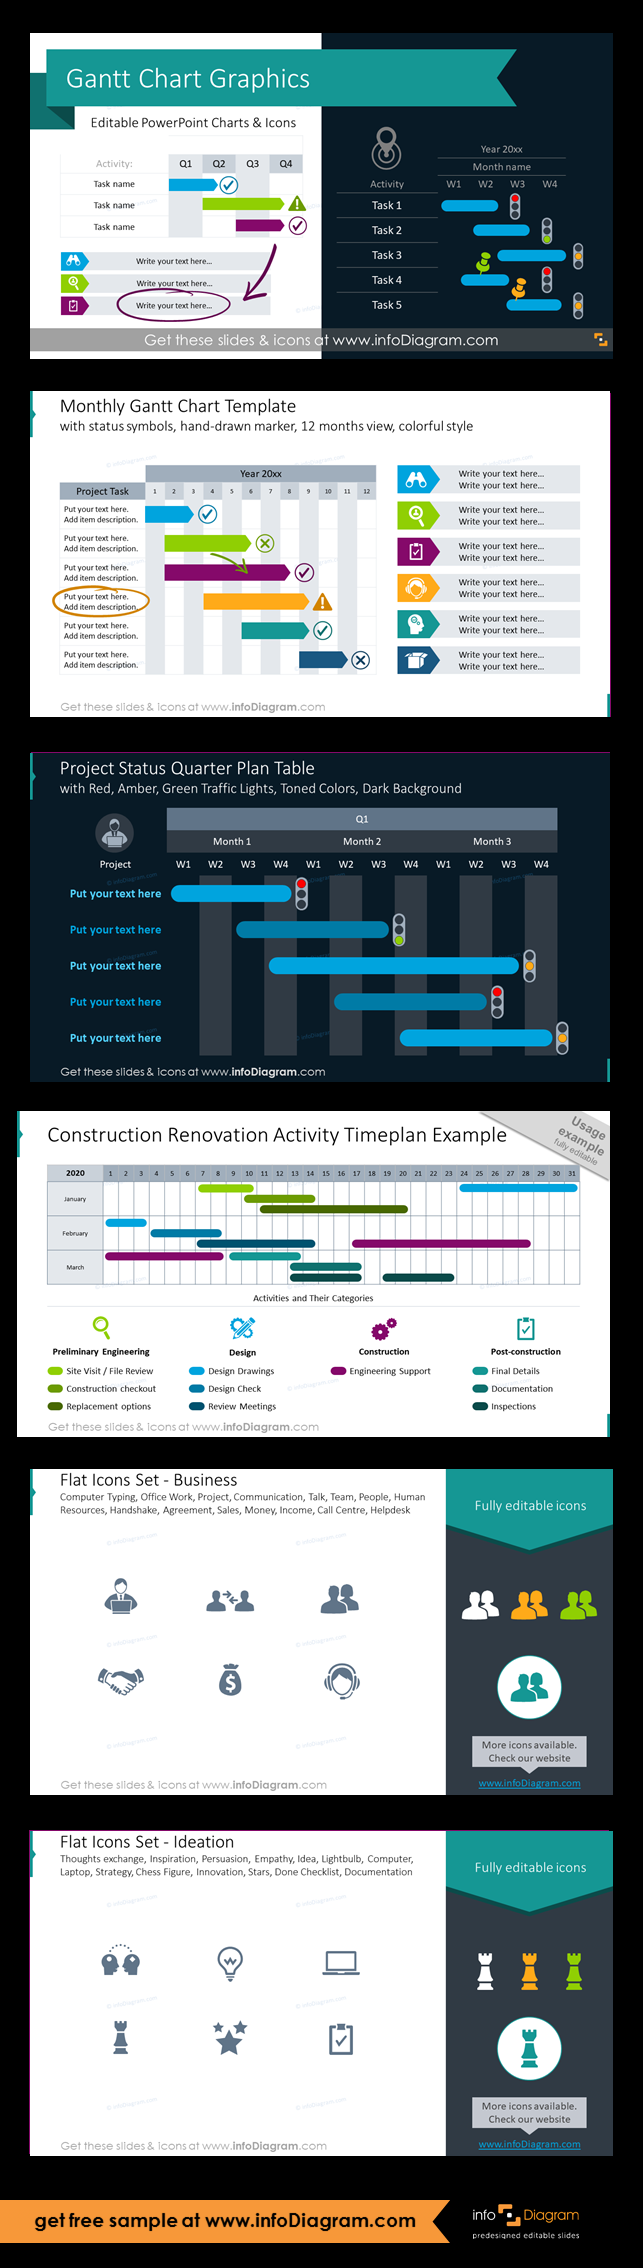 Gantt Chart Graphics for Project Planning